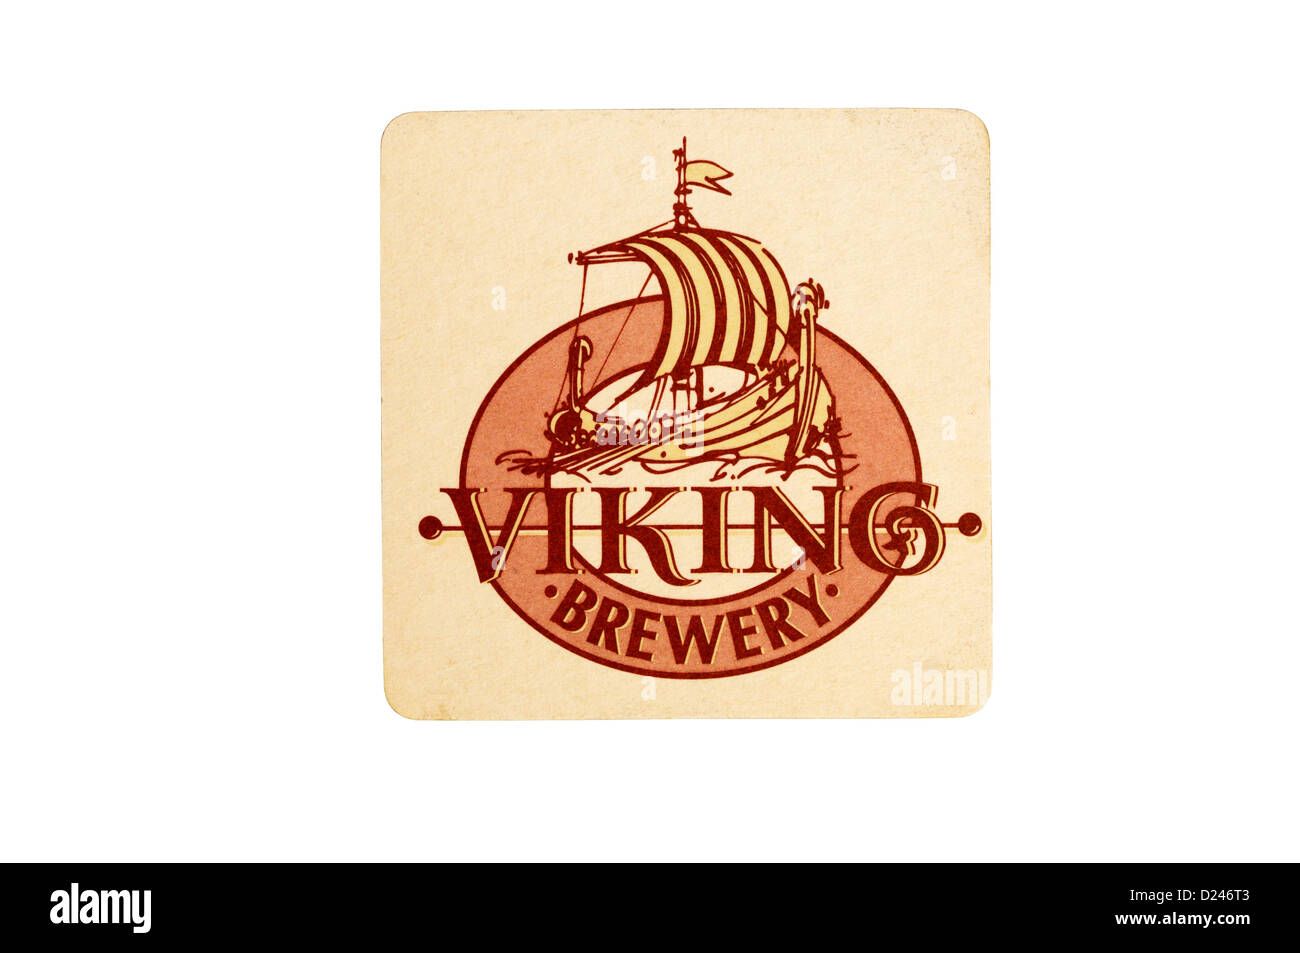 A Viking Brewery beer mat. - Stock Image